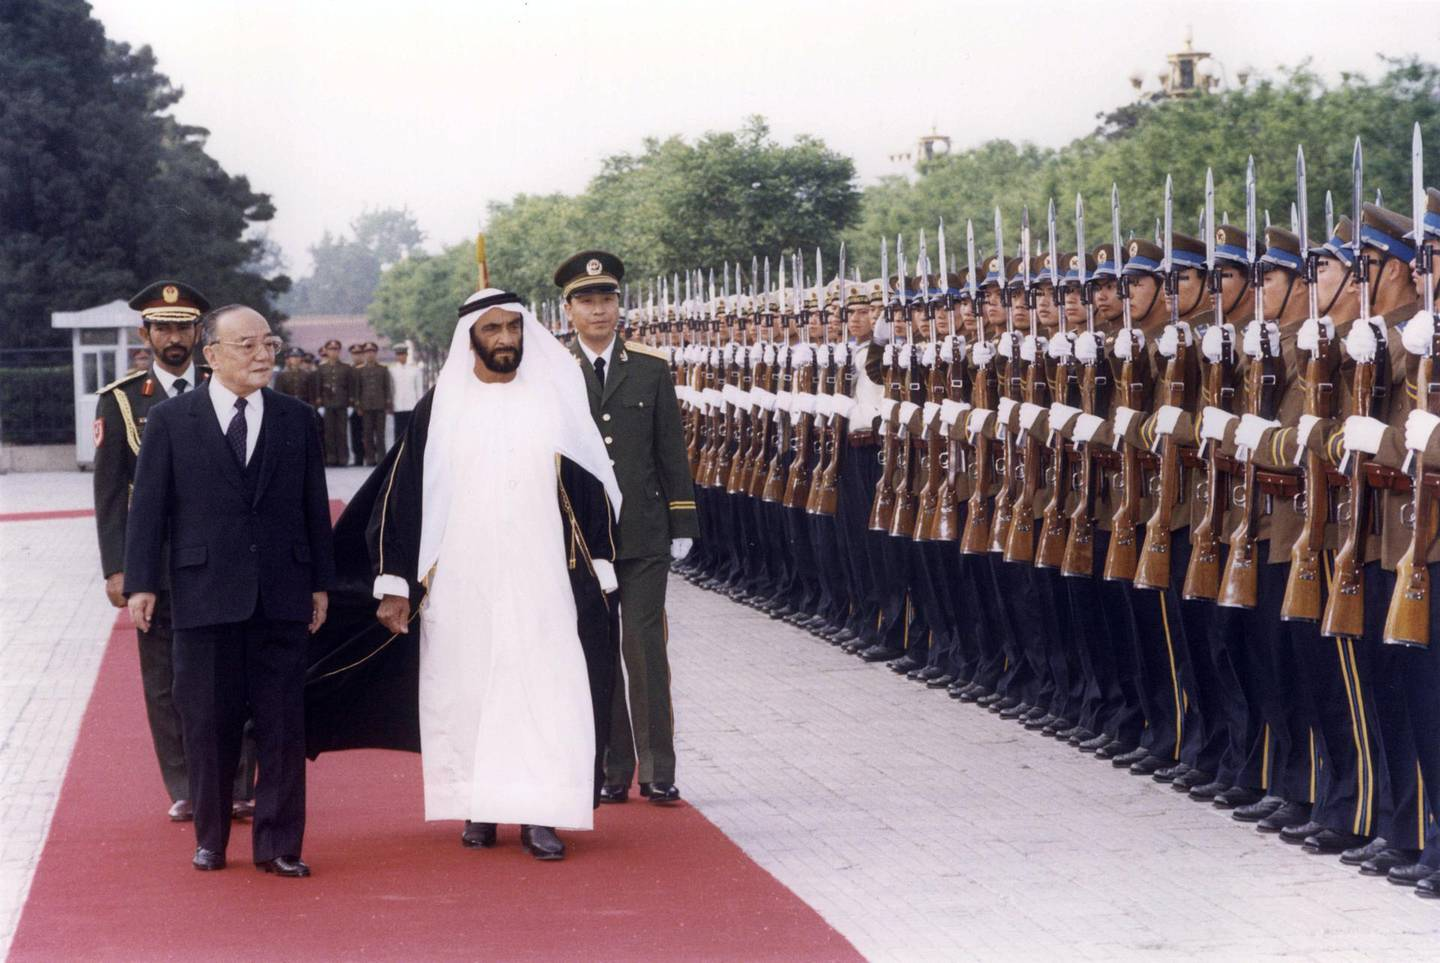 CHINA - 1990: Photographs from the Al Ittihad archive of HH Sheikh Zayed bin Sultan bin Zayed Al Nahyan President of the United Arab Emirates during an official visit to China in 1990. (Al Ittihad)